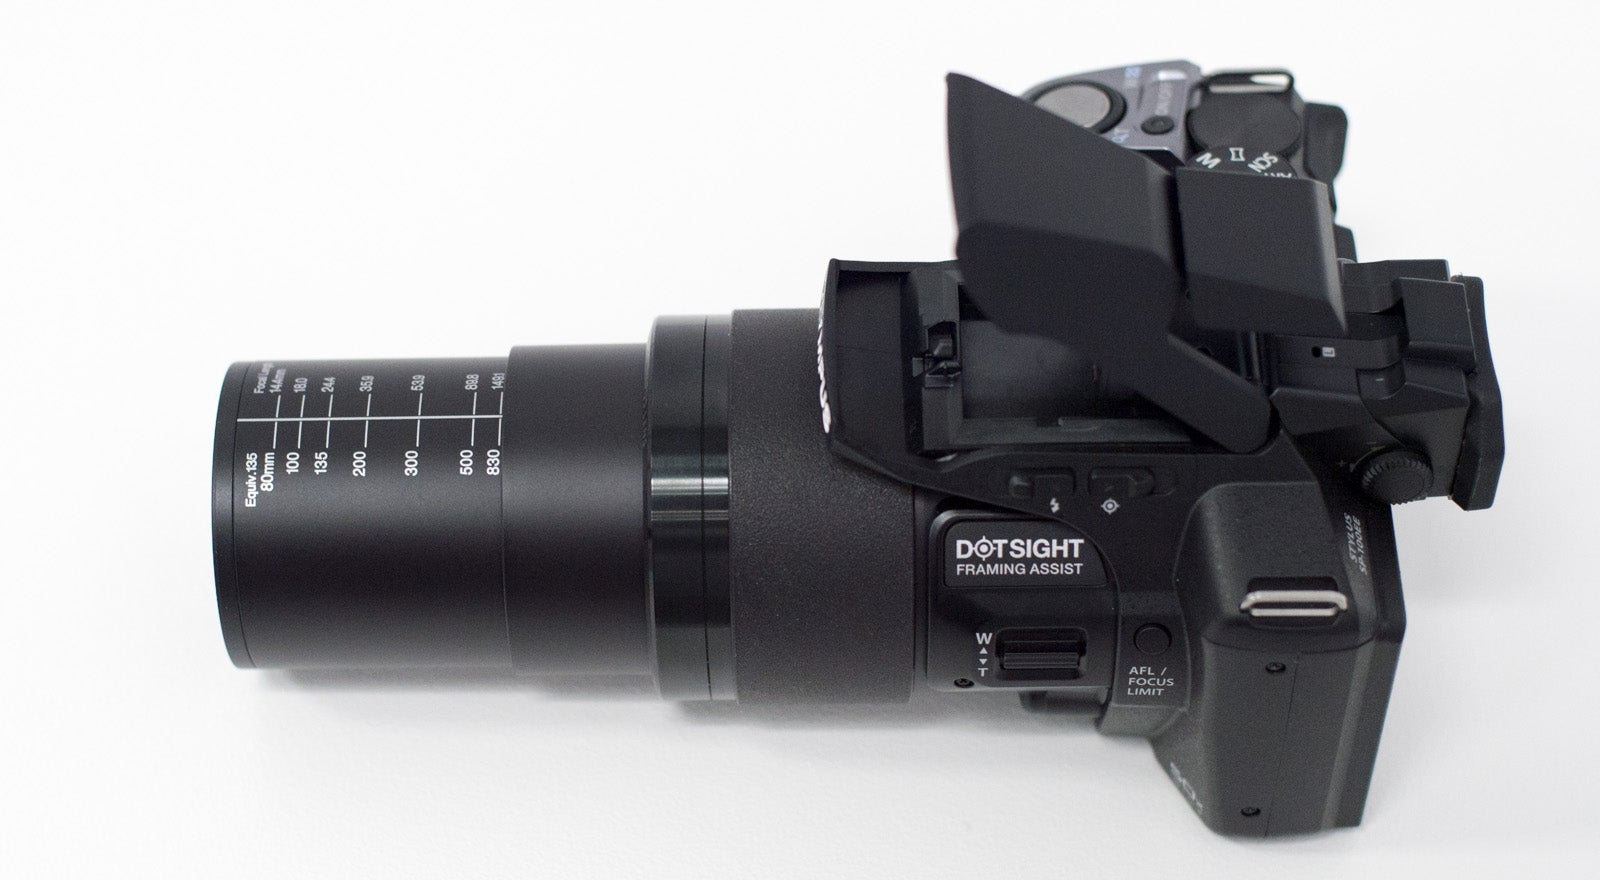 OLYMPUS SP-100 Is a 50X Superzoom Camera With a Red Dot Sight Like a Gun